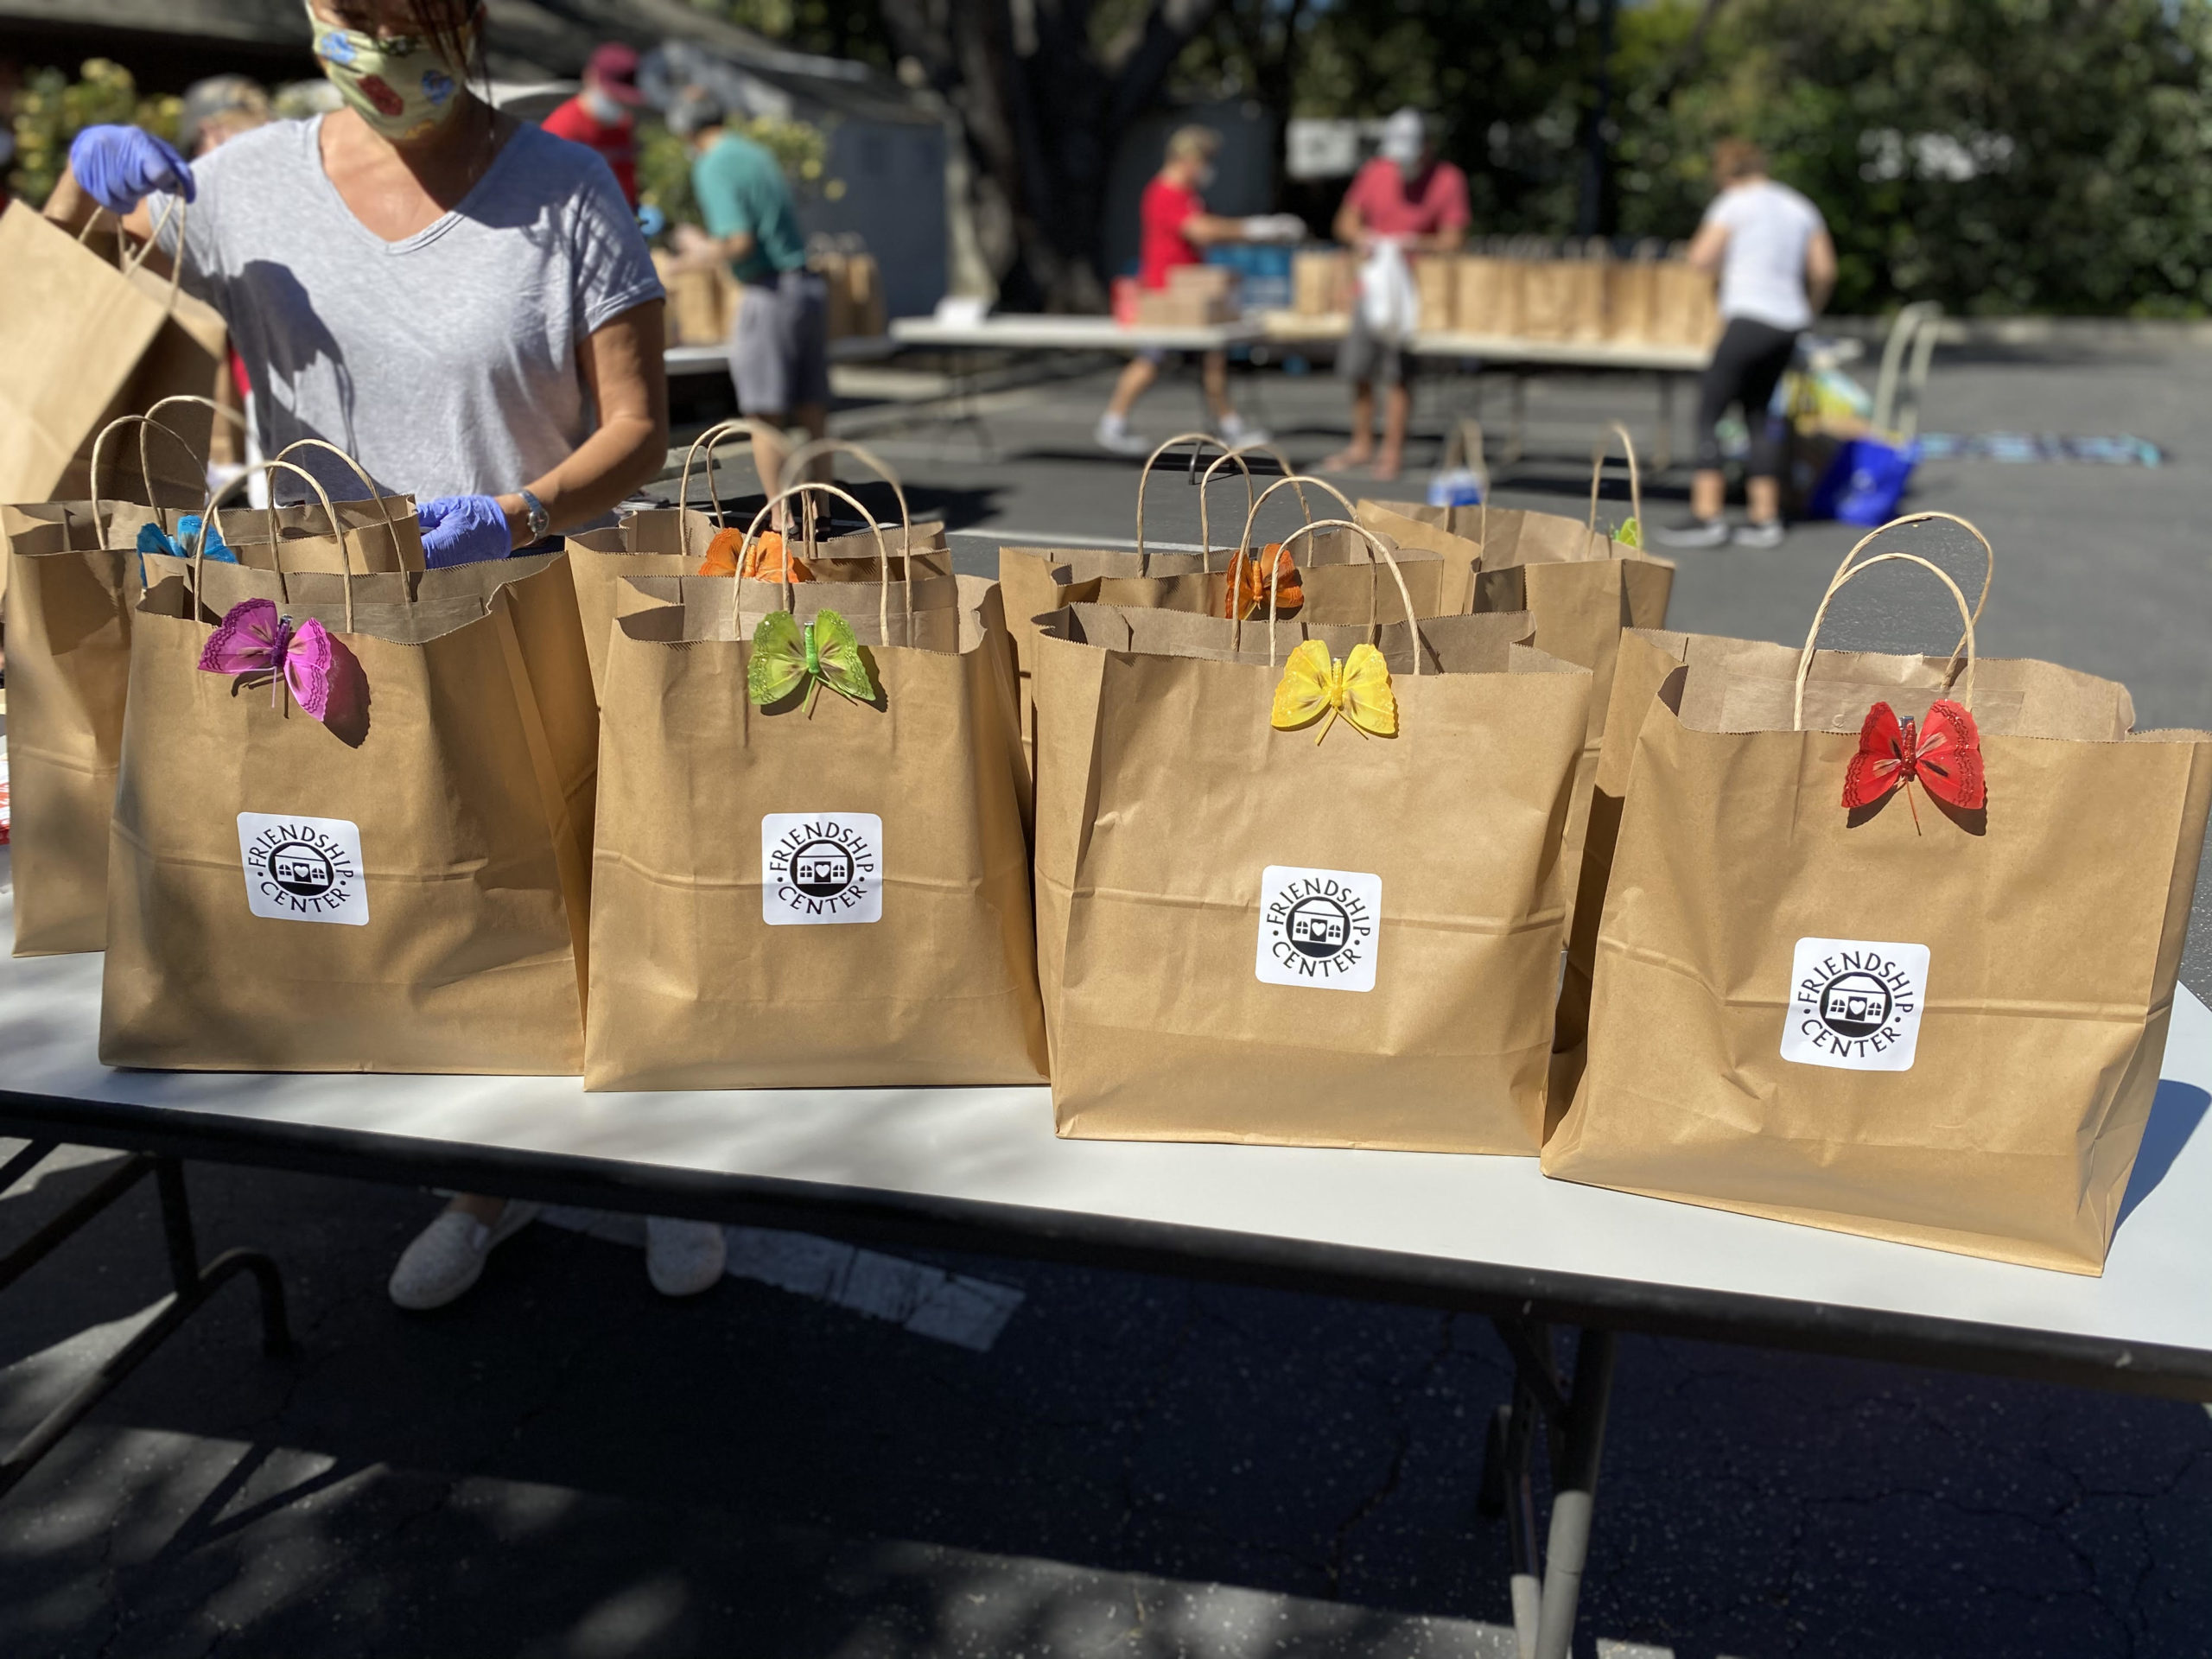 Food For Friends & Take Care Totes: Friendship Center Shifts to Remote Services